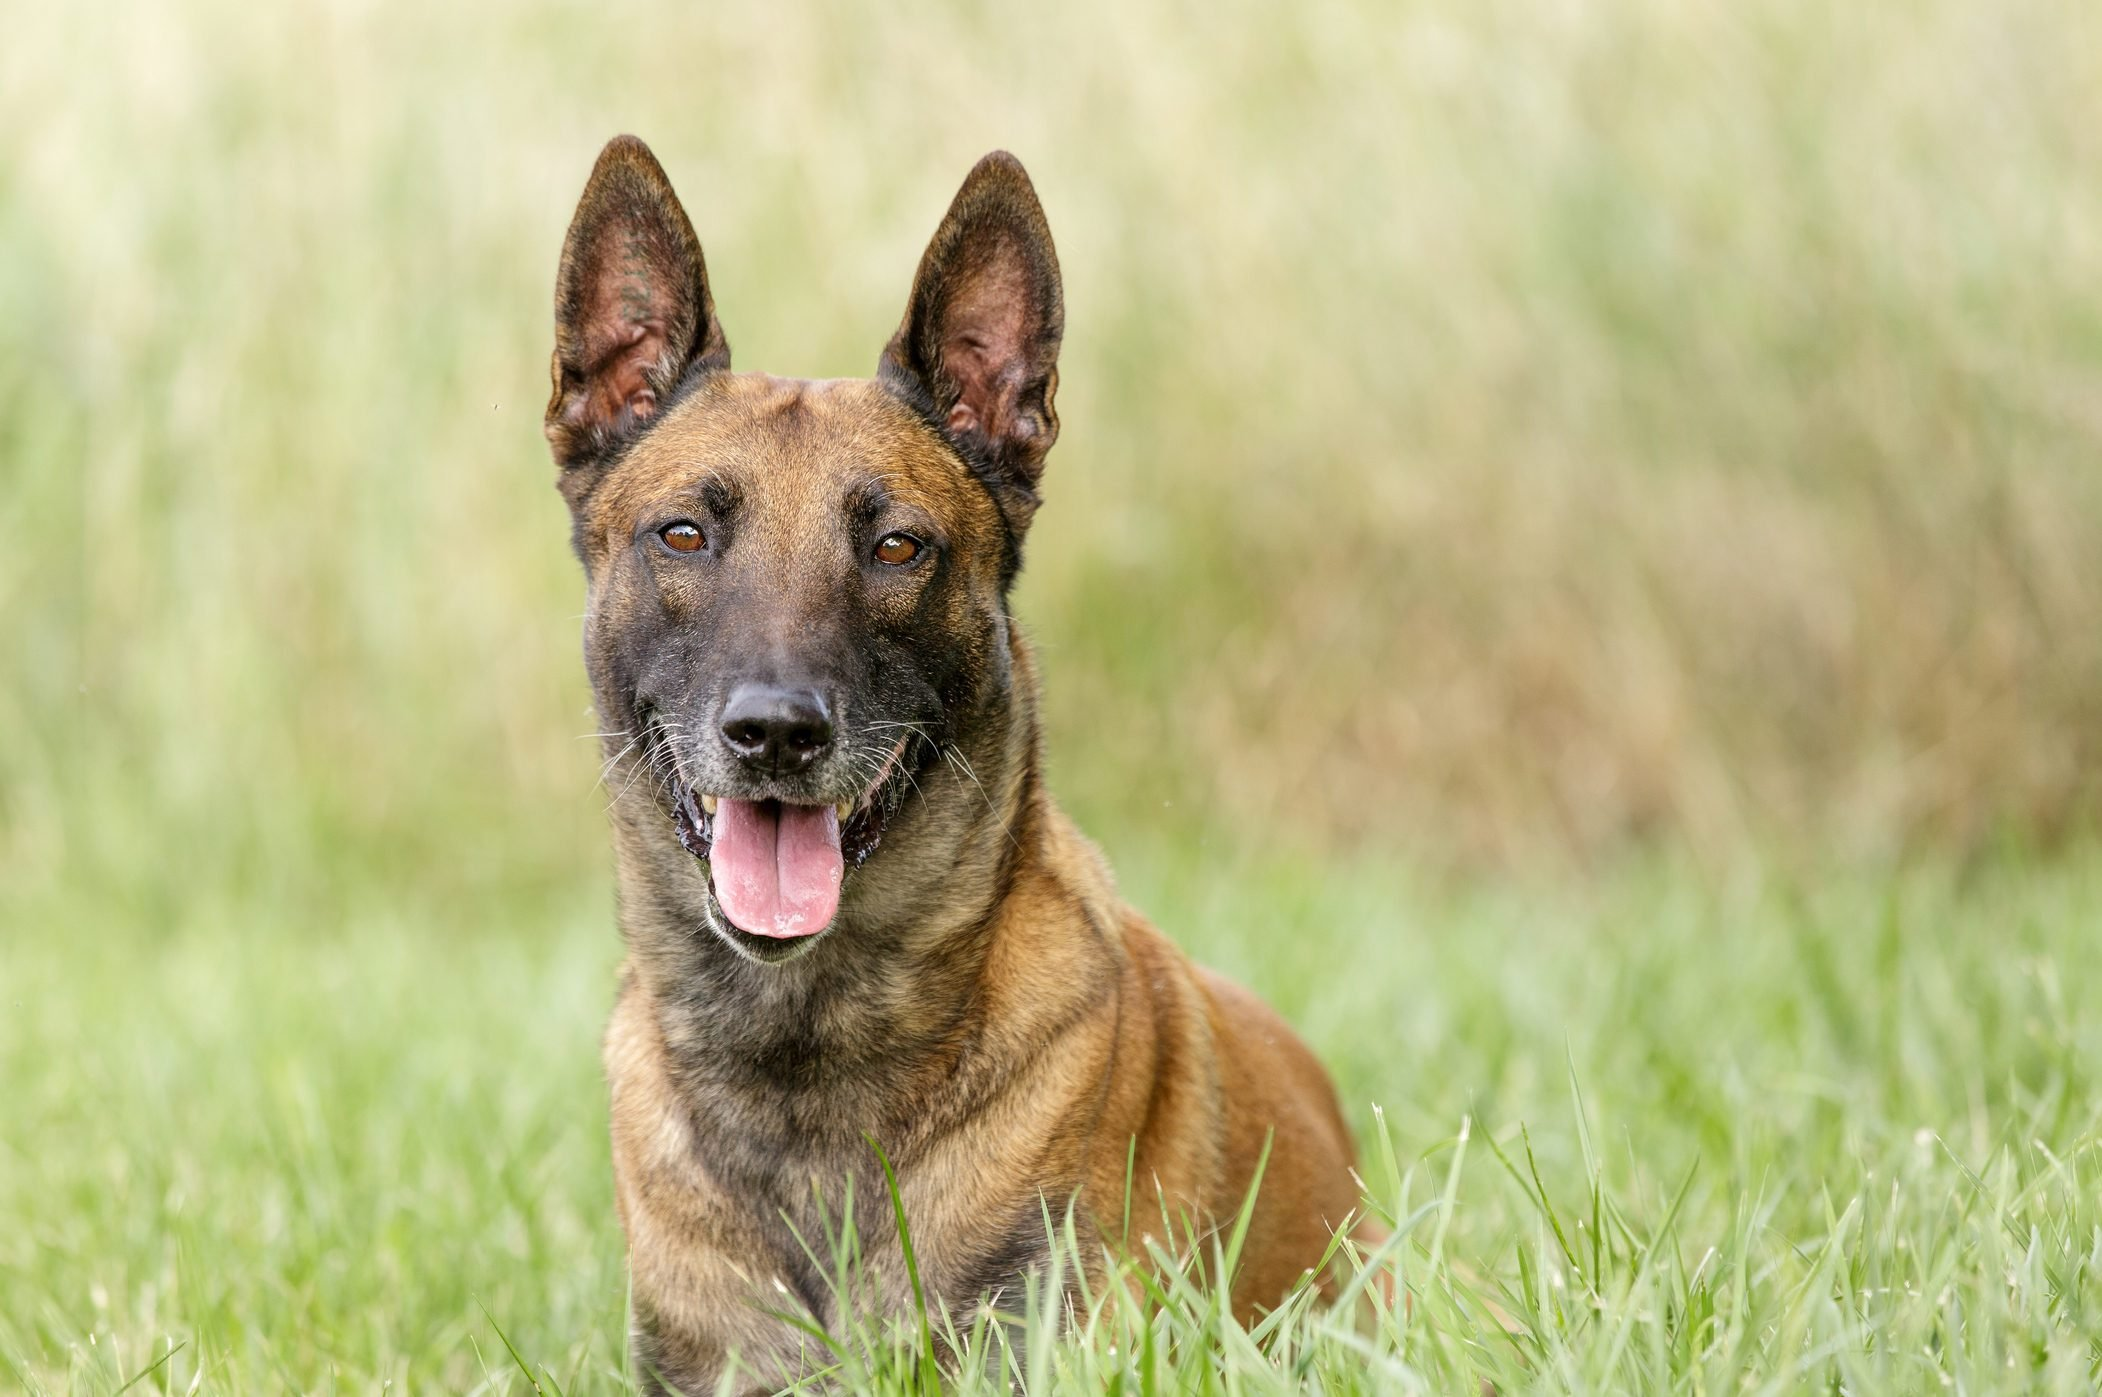 Belgian Malinois laying down in grassy field